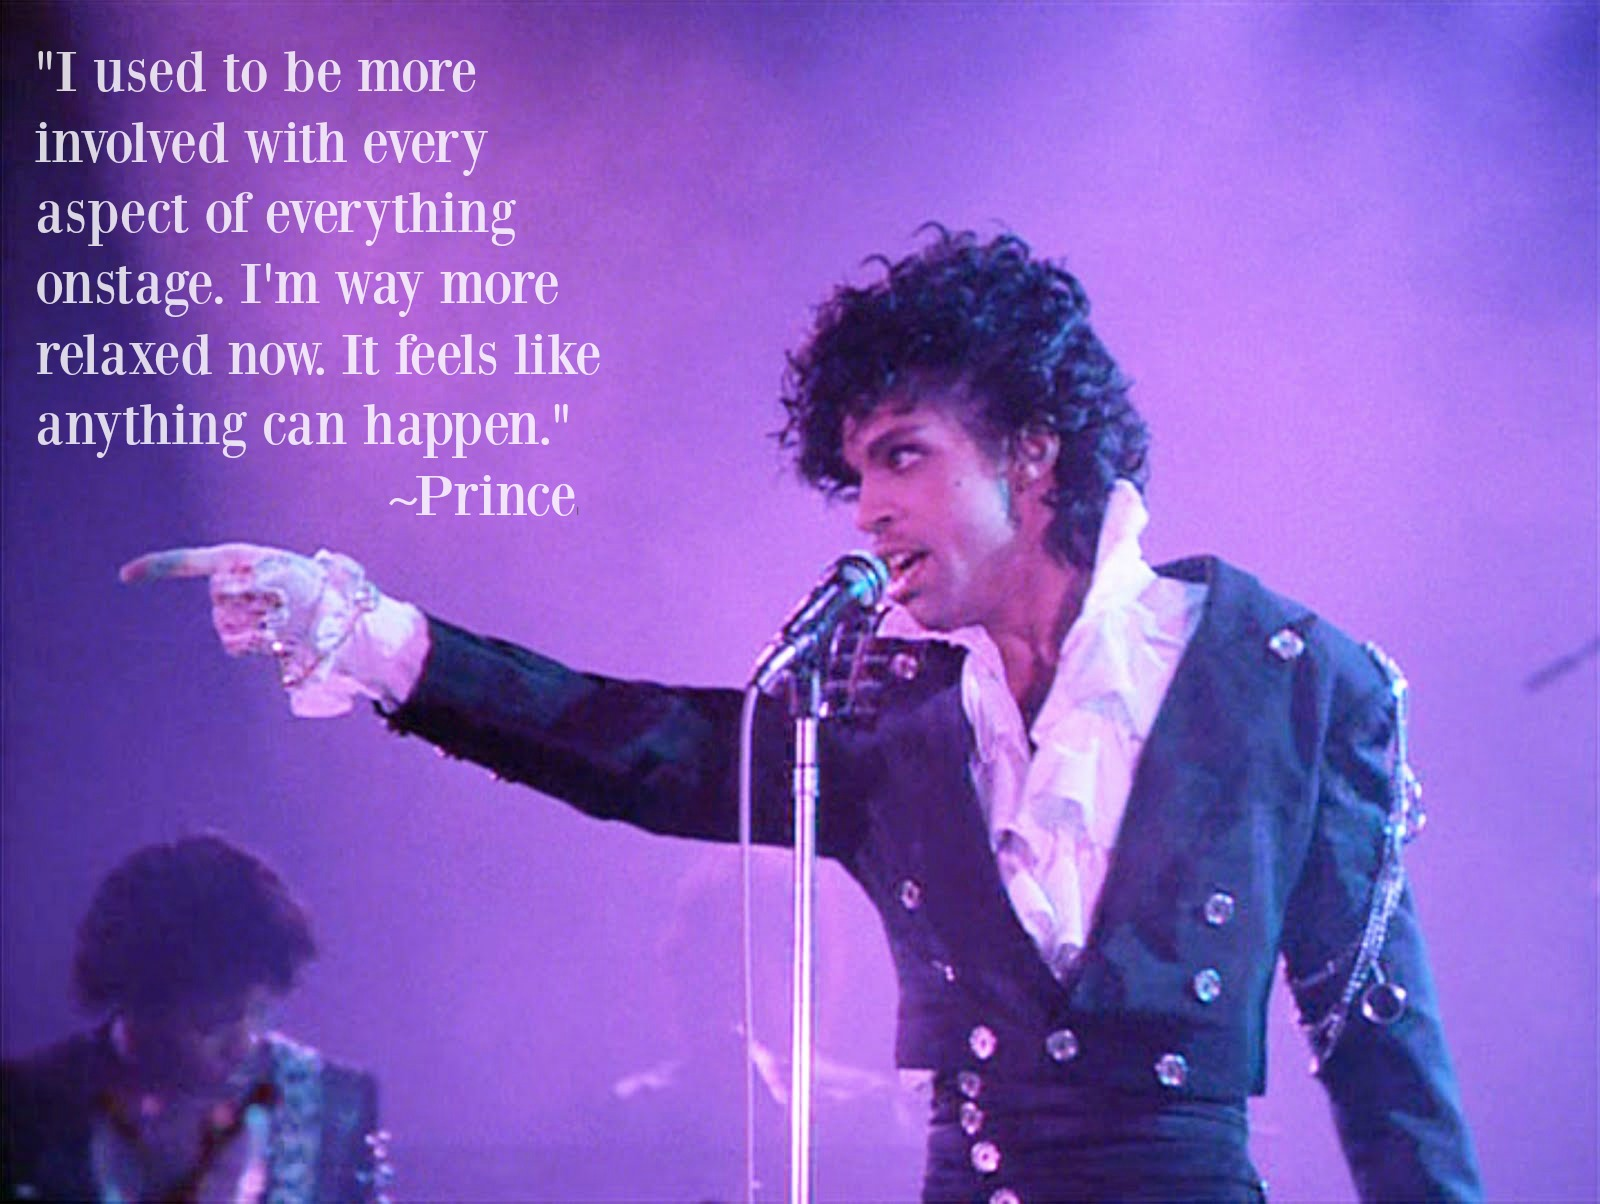 I used to be more involved with every aspect of everything on stage - Prince quote and Purple Rain photo